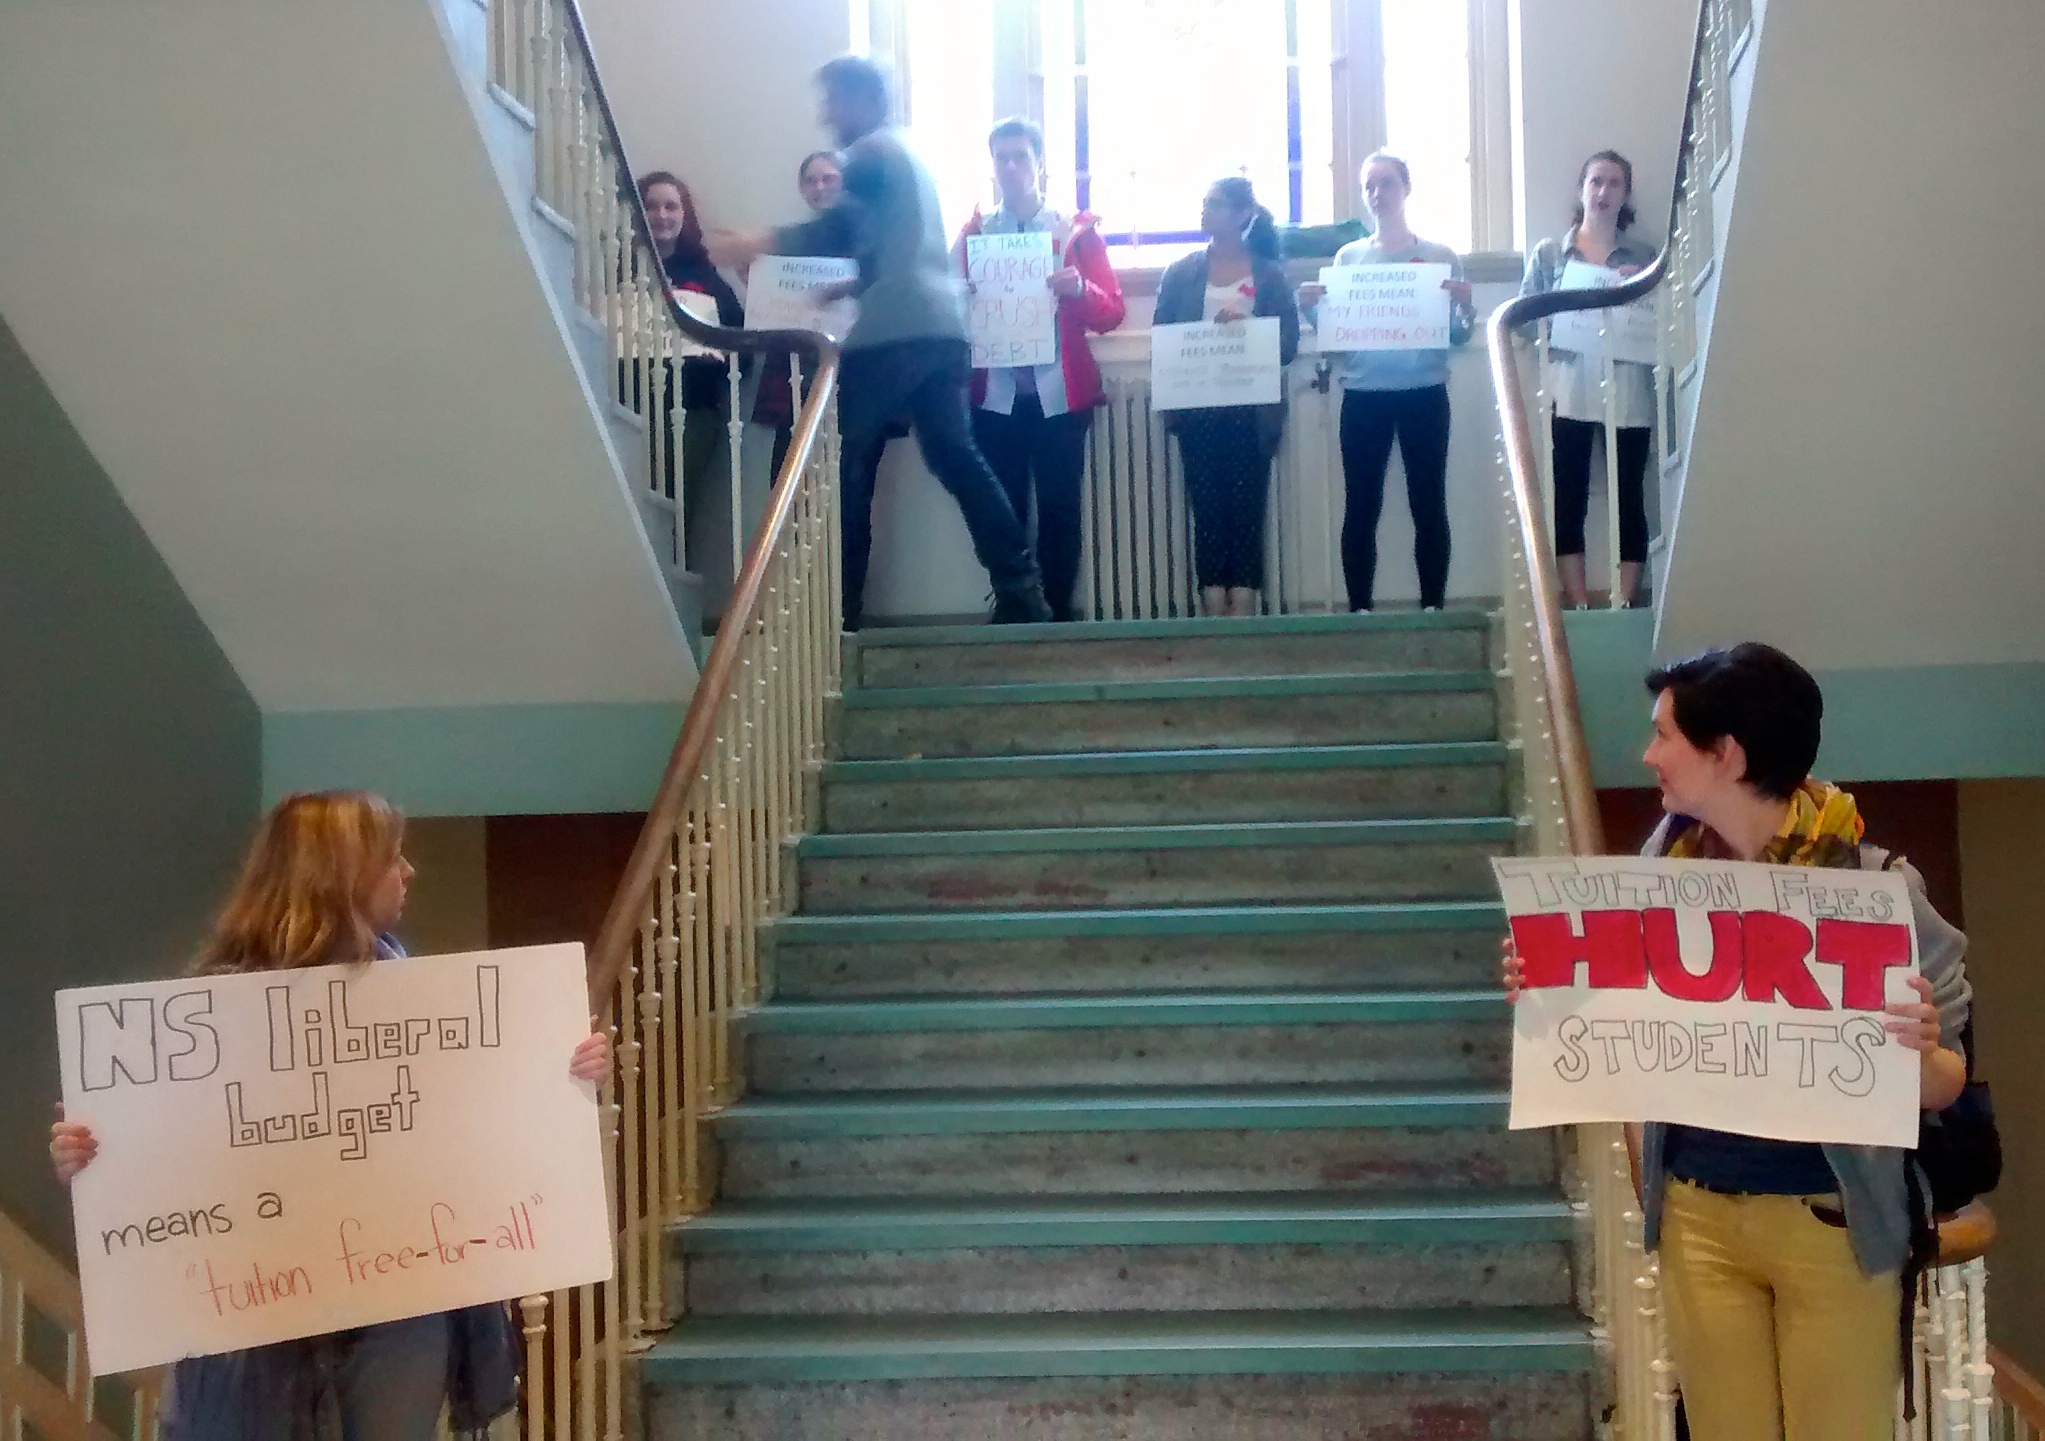 King's Students protesting fee hikes watch a Board member ascend the stairs Photo: Moira Donovan